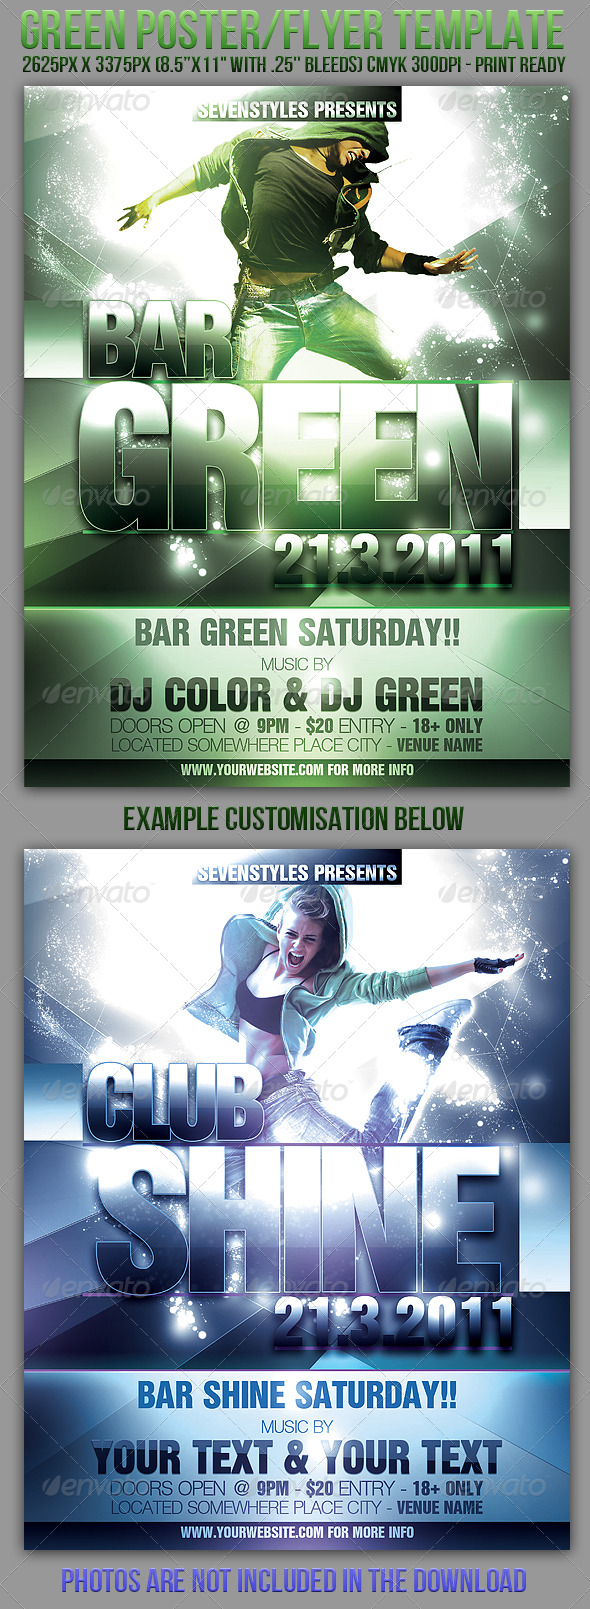 GraphicRiver Green Poster Flyer Template 164150